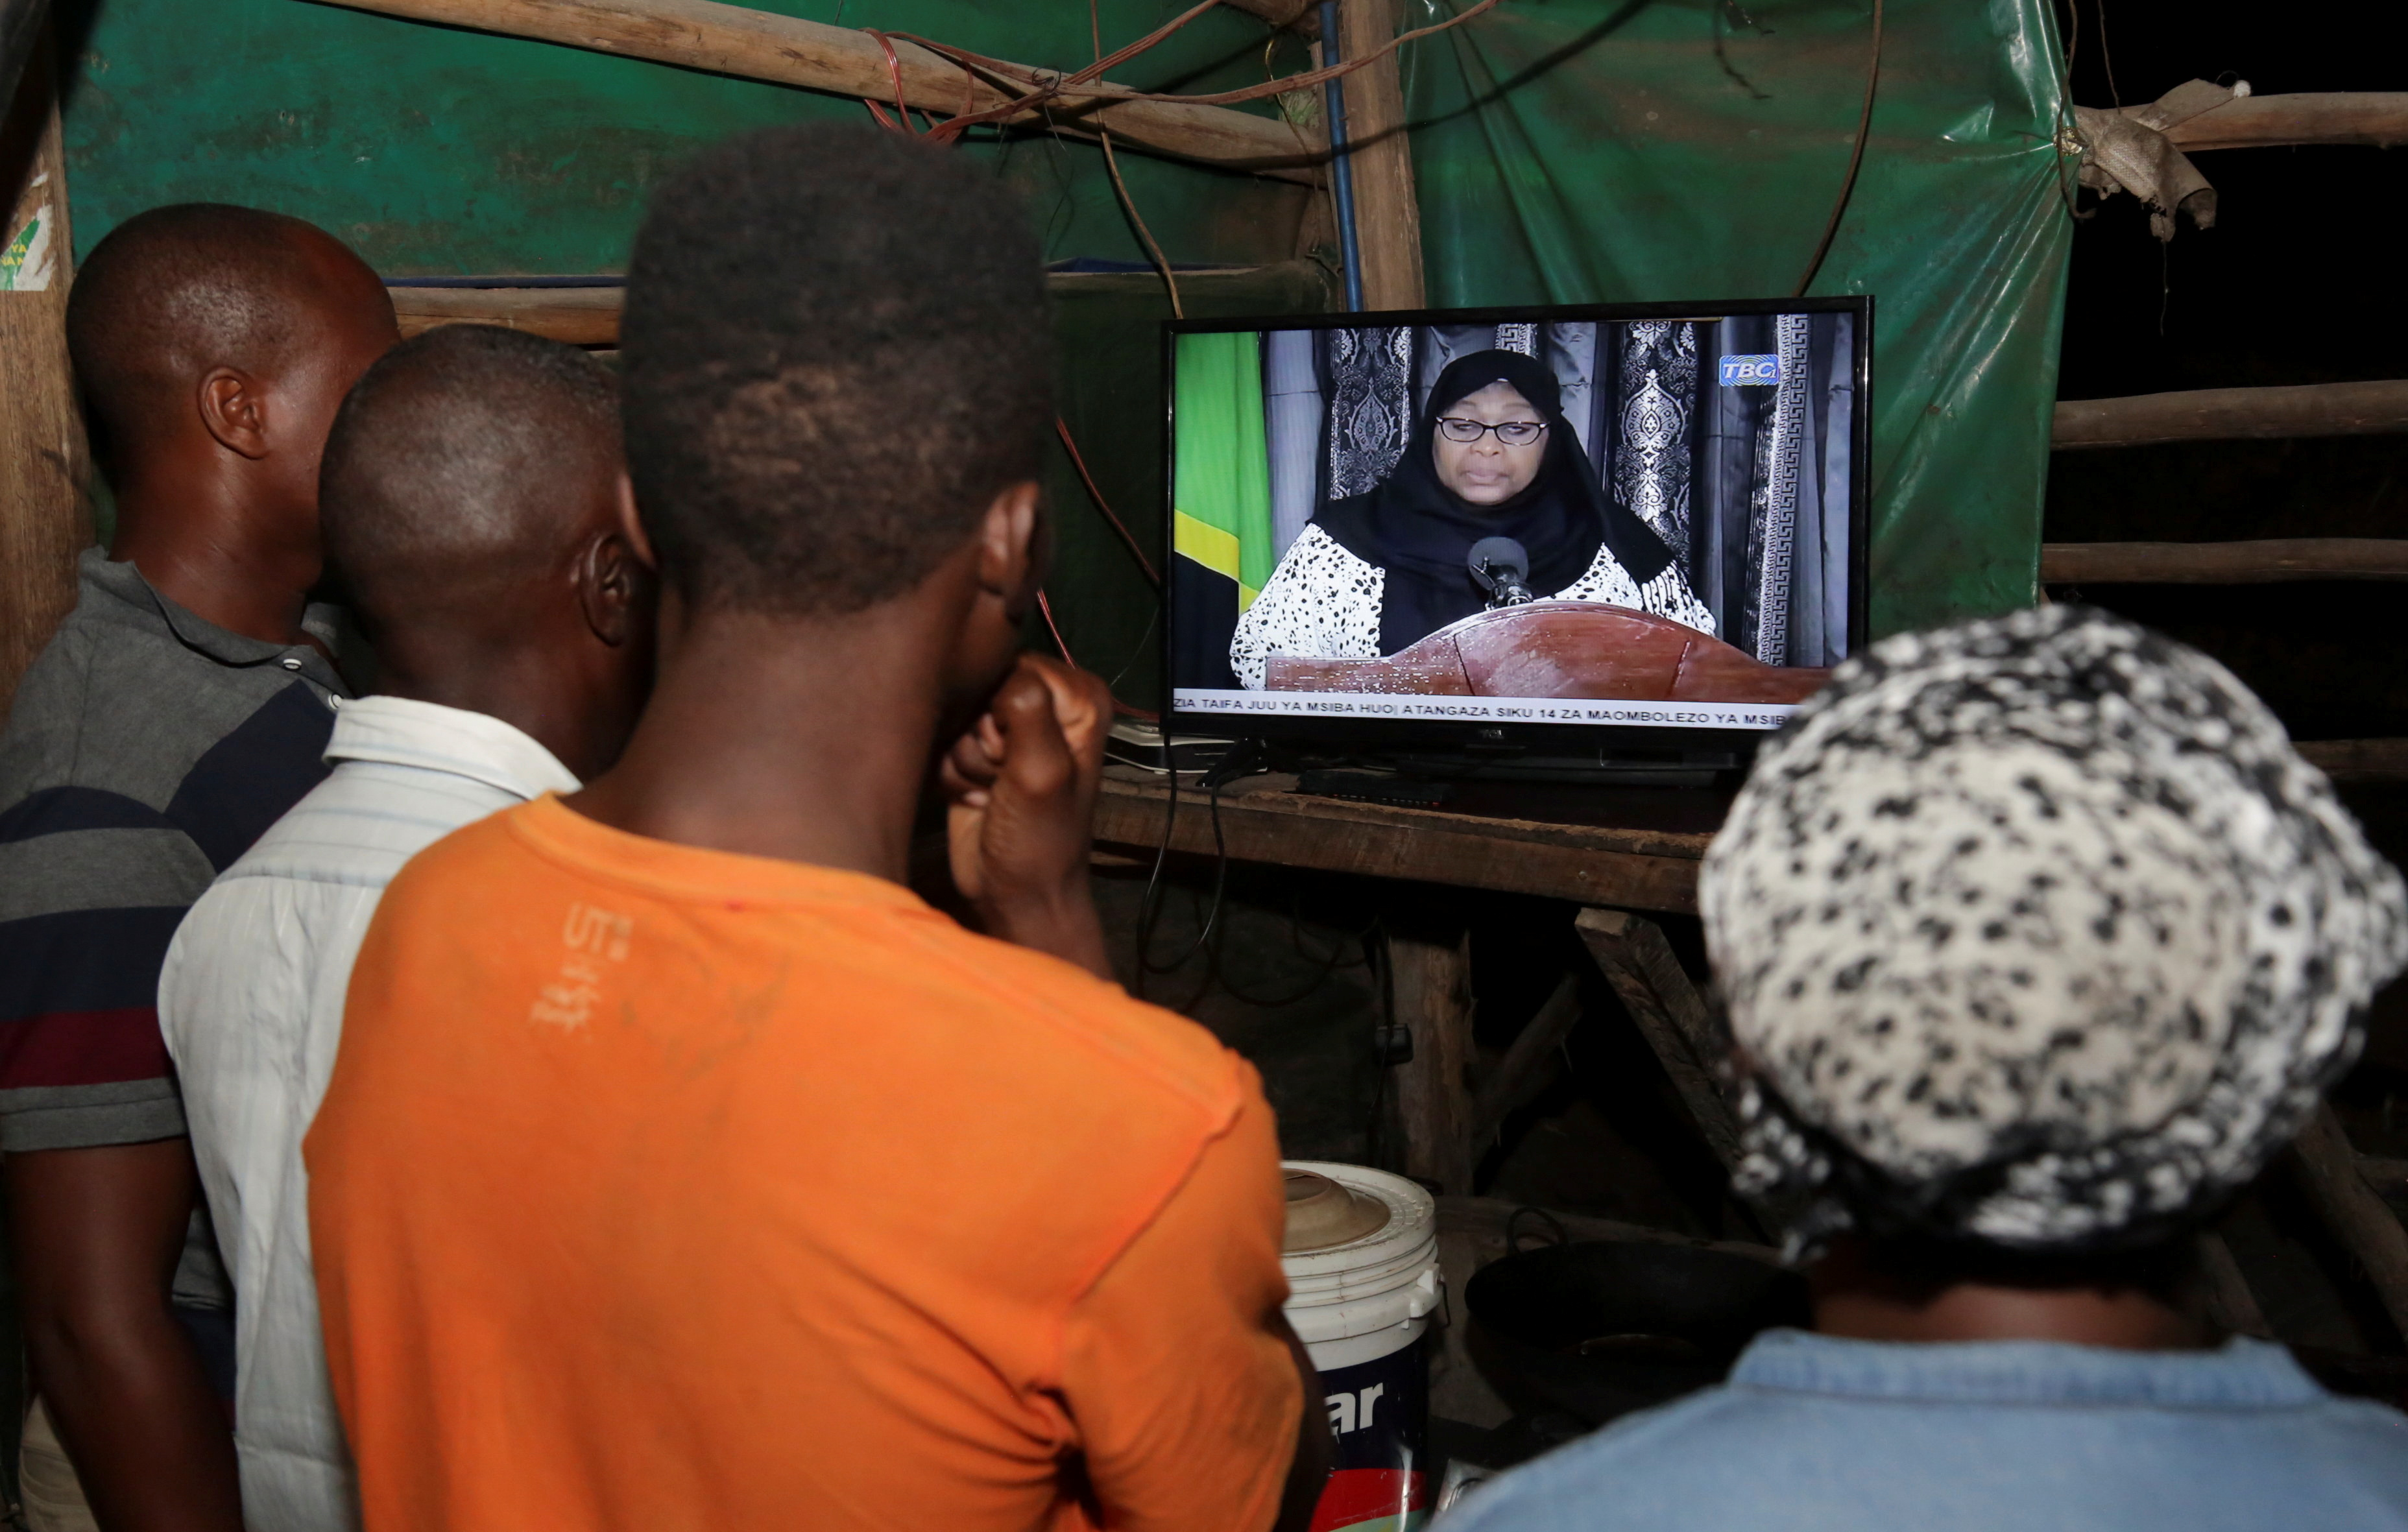 Residents watch the television announcement of the death of Tanzania's President John Magufuli, addressed by Vice President Samia Suluhu Hassan in Dar es Salaam, Tanzania March 18, 2021. REUTERS/Emmanuel Herman